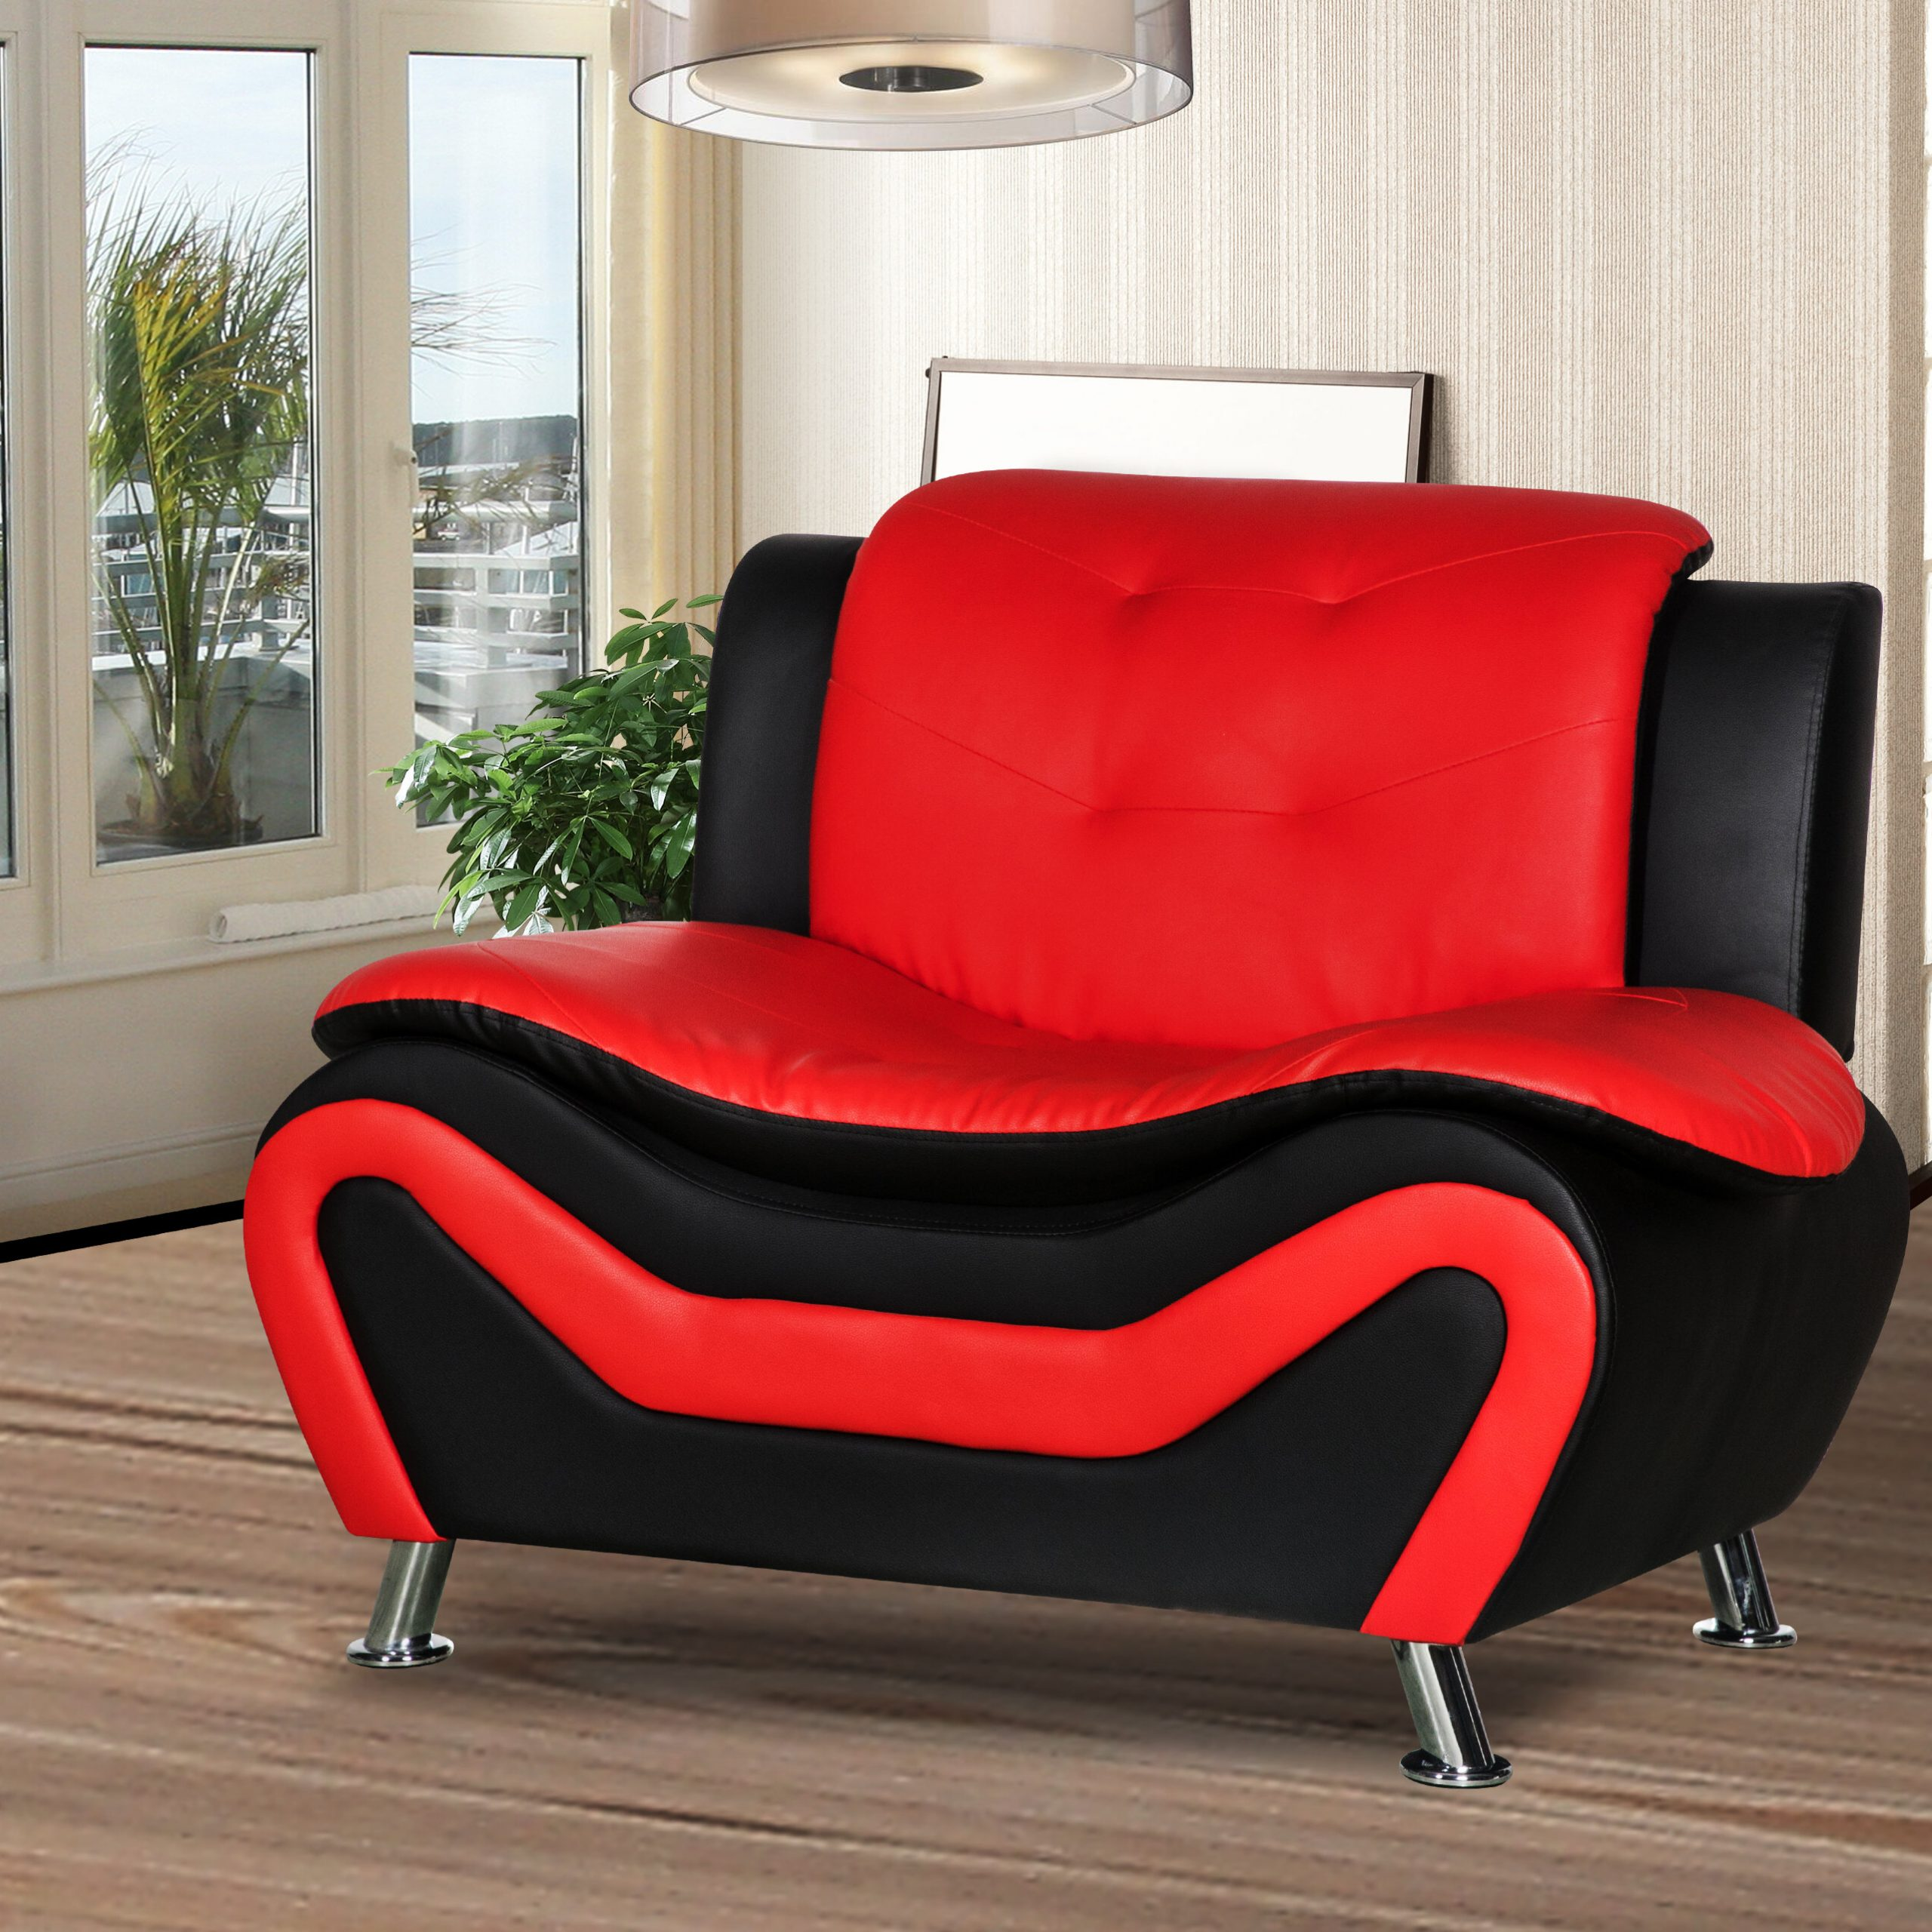 Montenegro Faux Leather Club Chairs For Preferred Montenegro Living Room Club Chair (View 2 of 20)